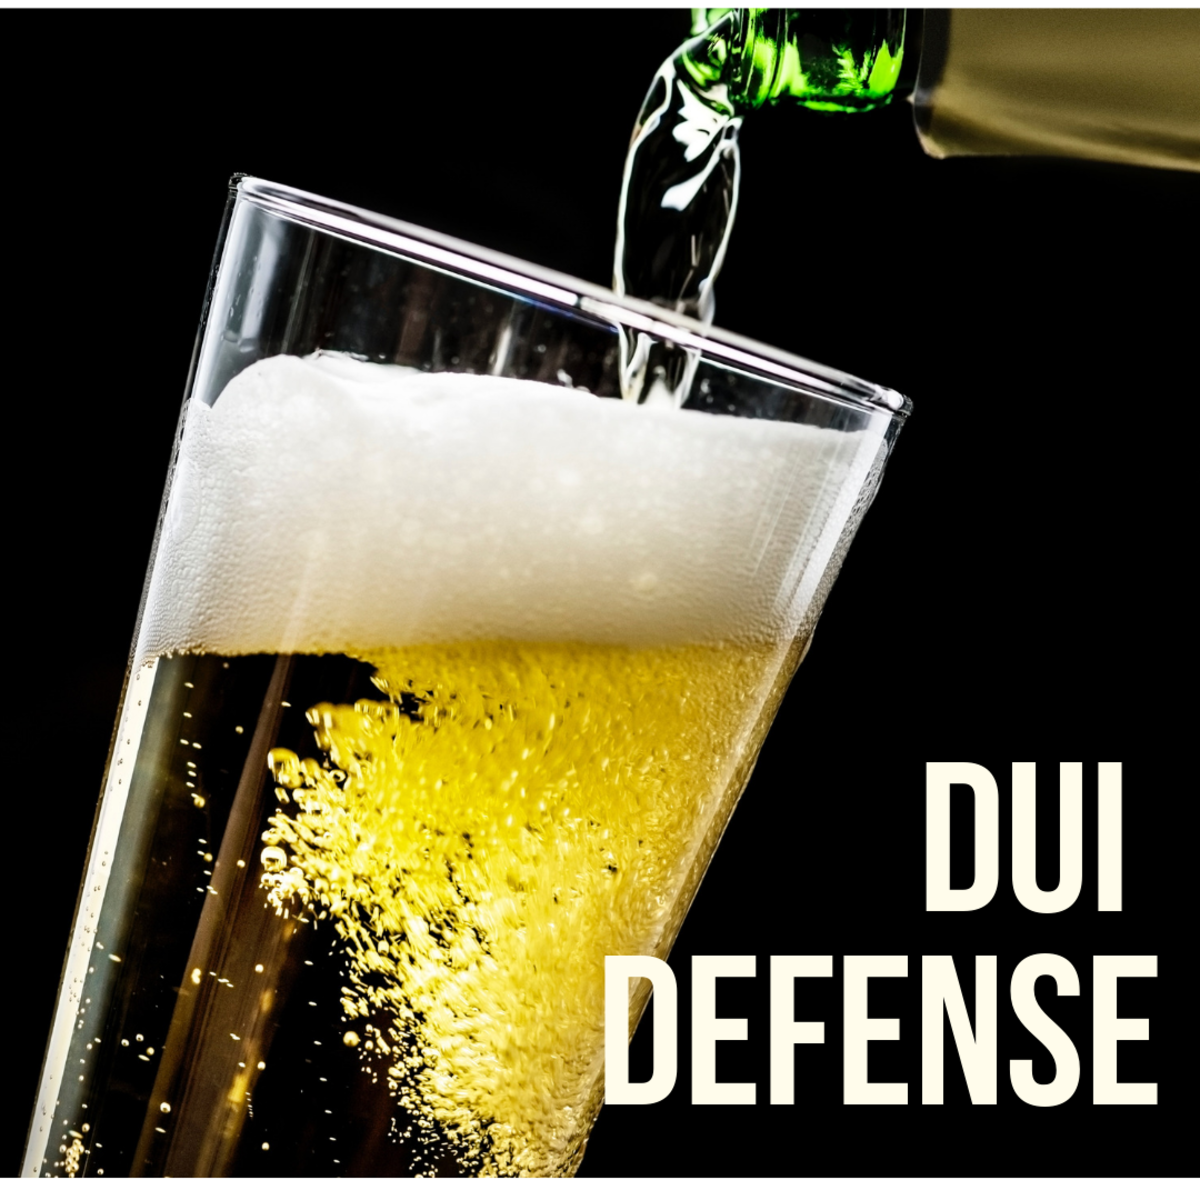 DUI Defense Advice